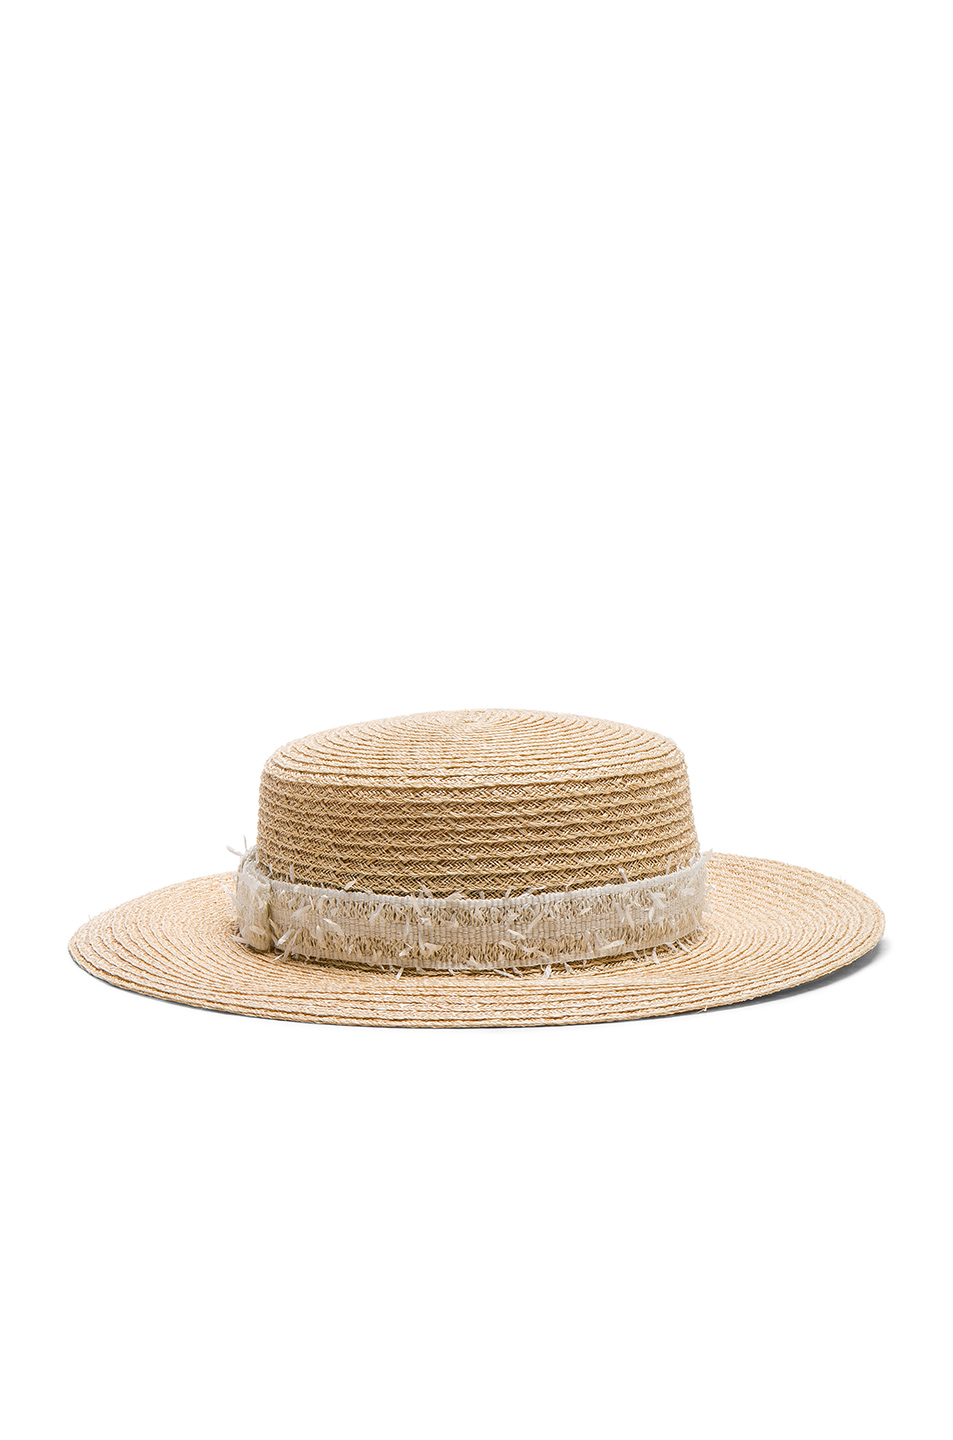 Eugenia Kim Brigitte Hat in Neutrals